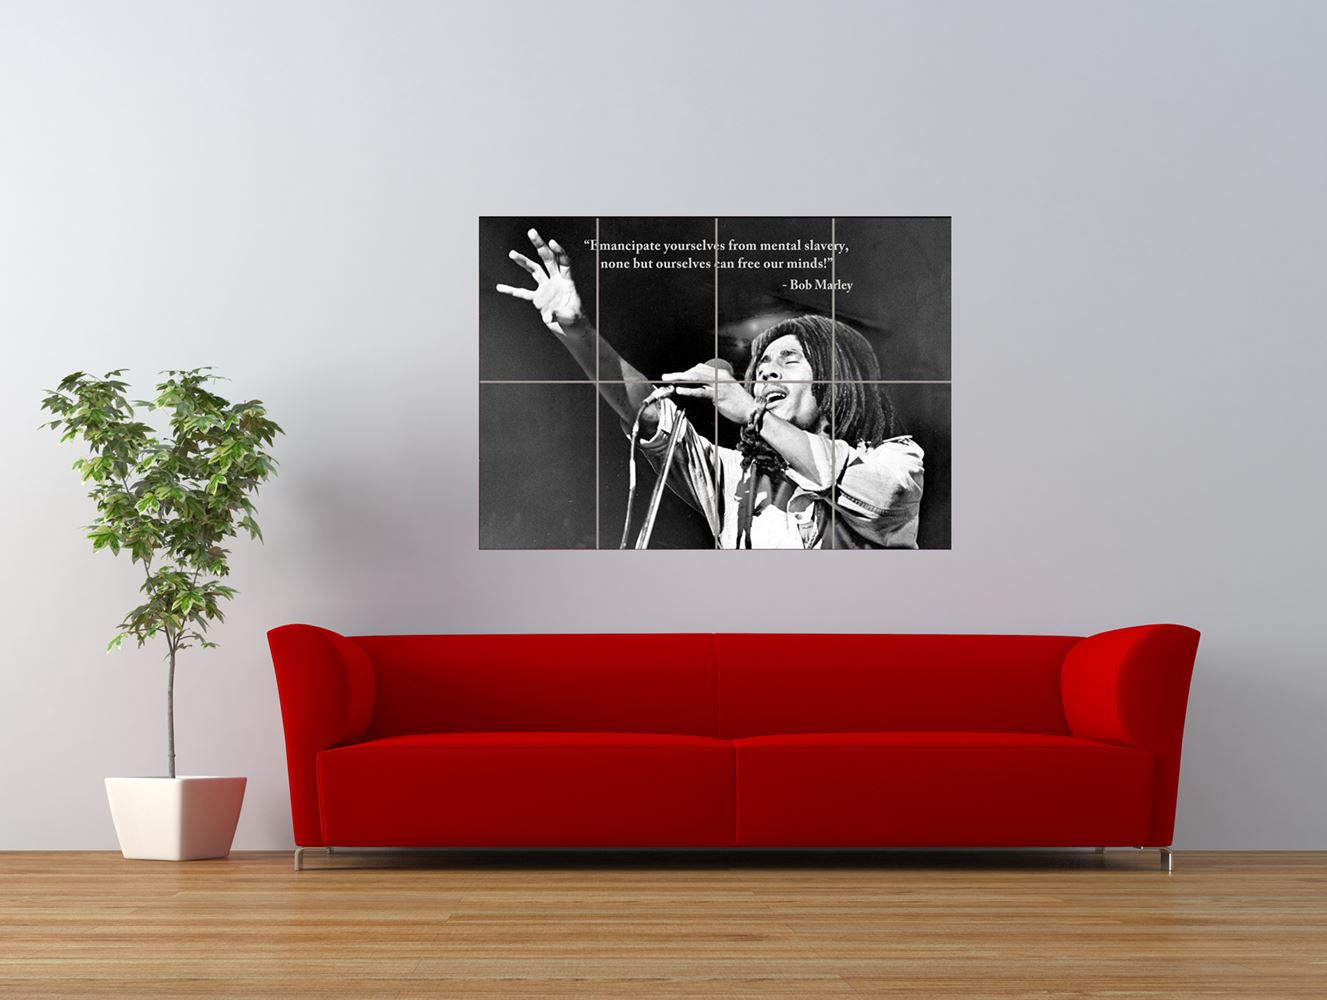 bob marley reggae legend quote redemption giant art print panel poster nor0264 ebay. Black Bedroom Furniture Sets. Home Design Ideas